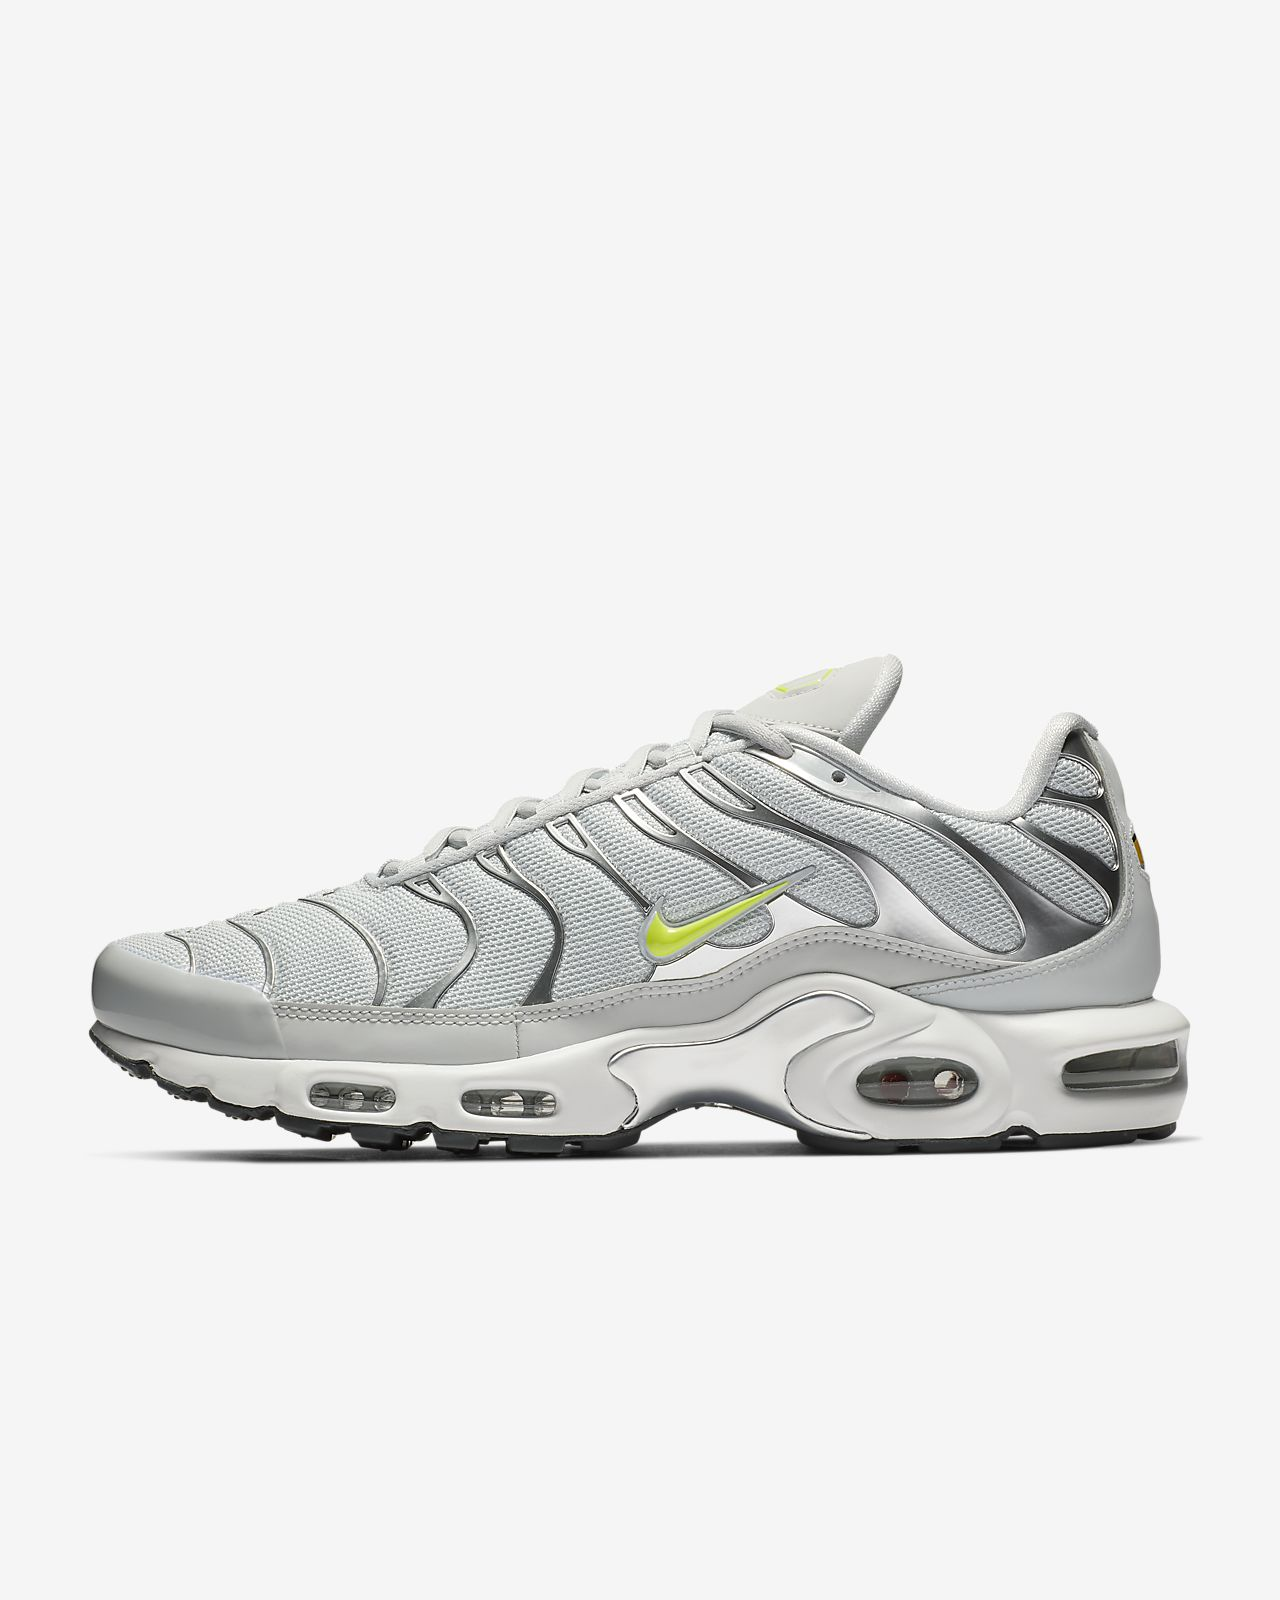 meet 389c9 6817f ... Nike Air Max Plus TN SE Men s Shoe